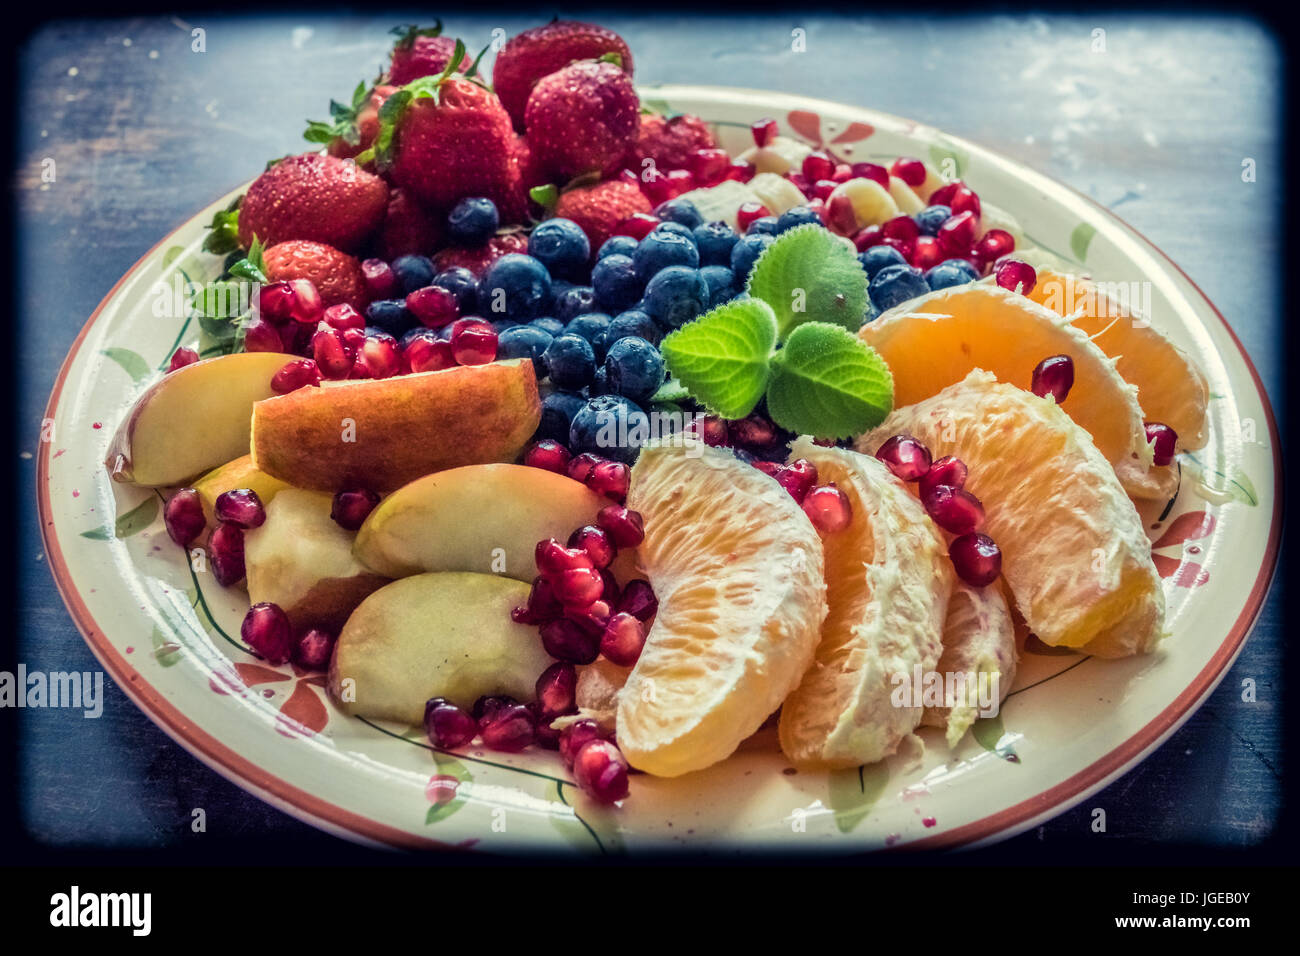 A closeup view of a platter of mixed fruits including strawberries, oranges, blueberries, apples and bananas - Stock Image